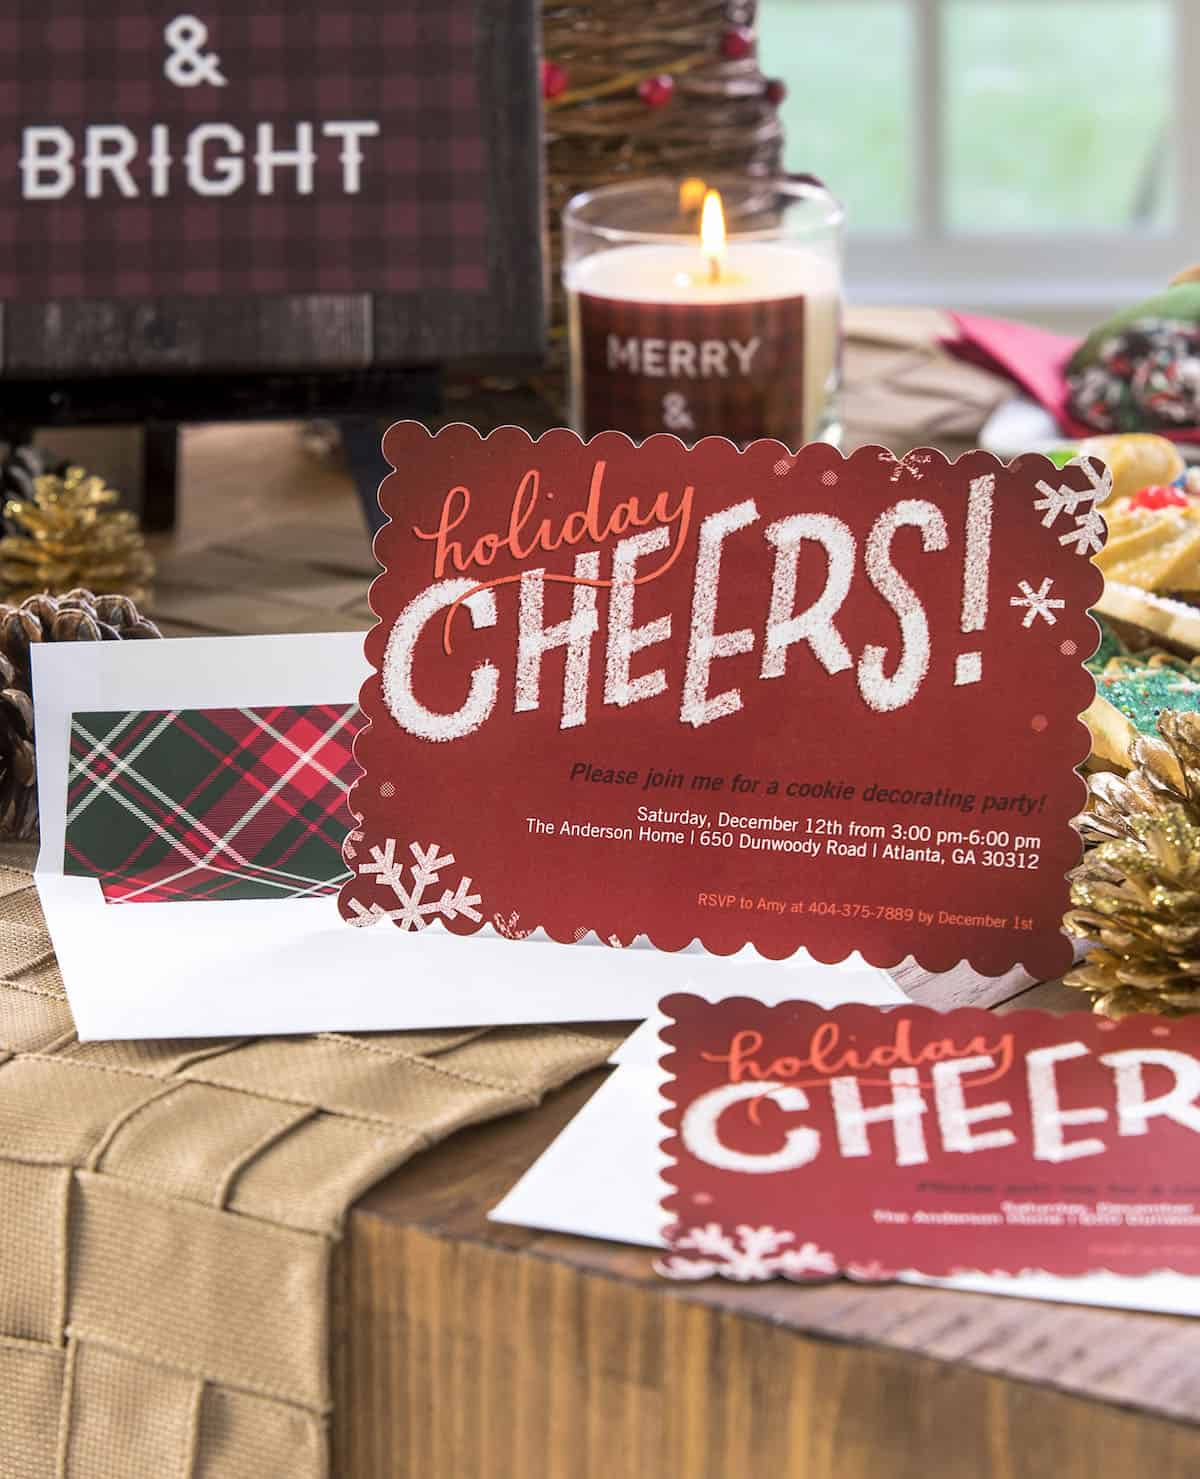 Use personalized Shutterfly printed items along with my DIY burlap runner tutorial to have the best plaid themed cookie exchange ever!